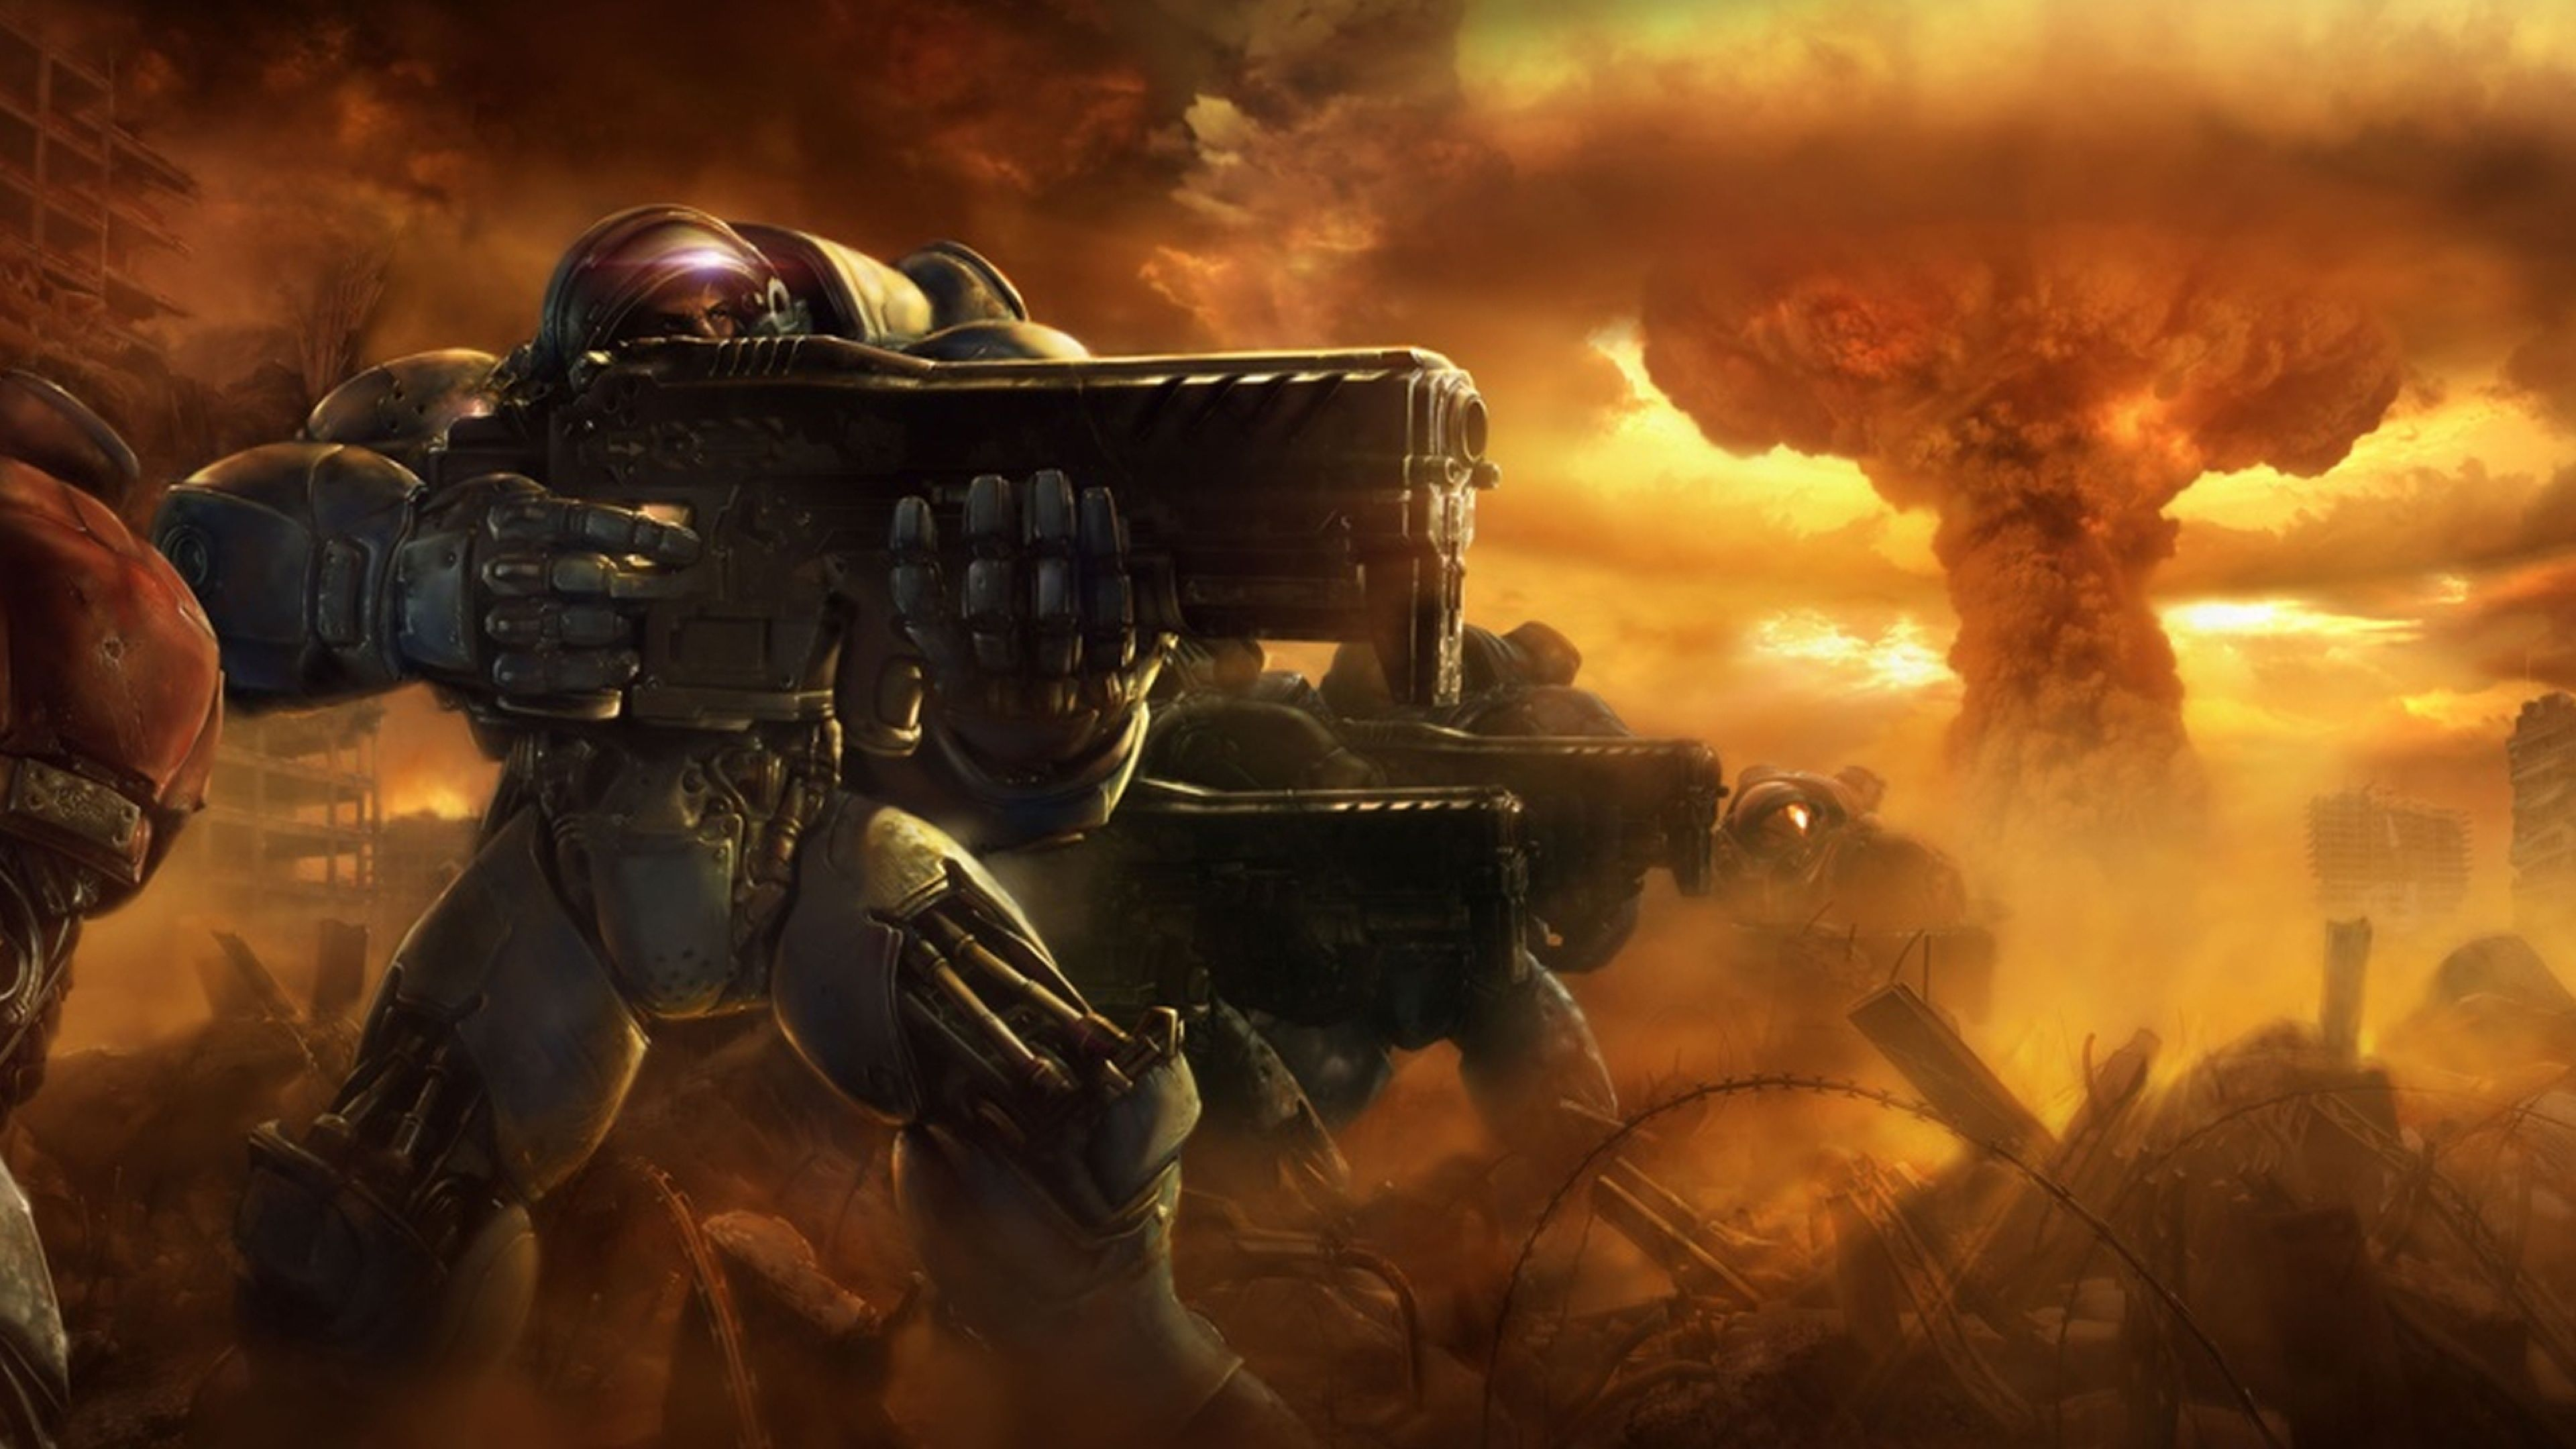 Starcraft 2 4k Ultra Hd Wallpapers Top Free Starcraft 2 4k